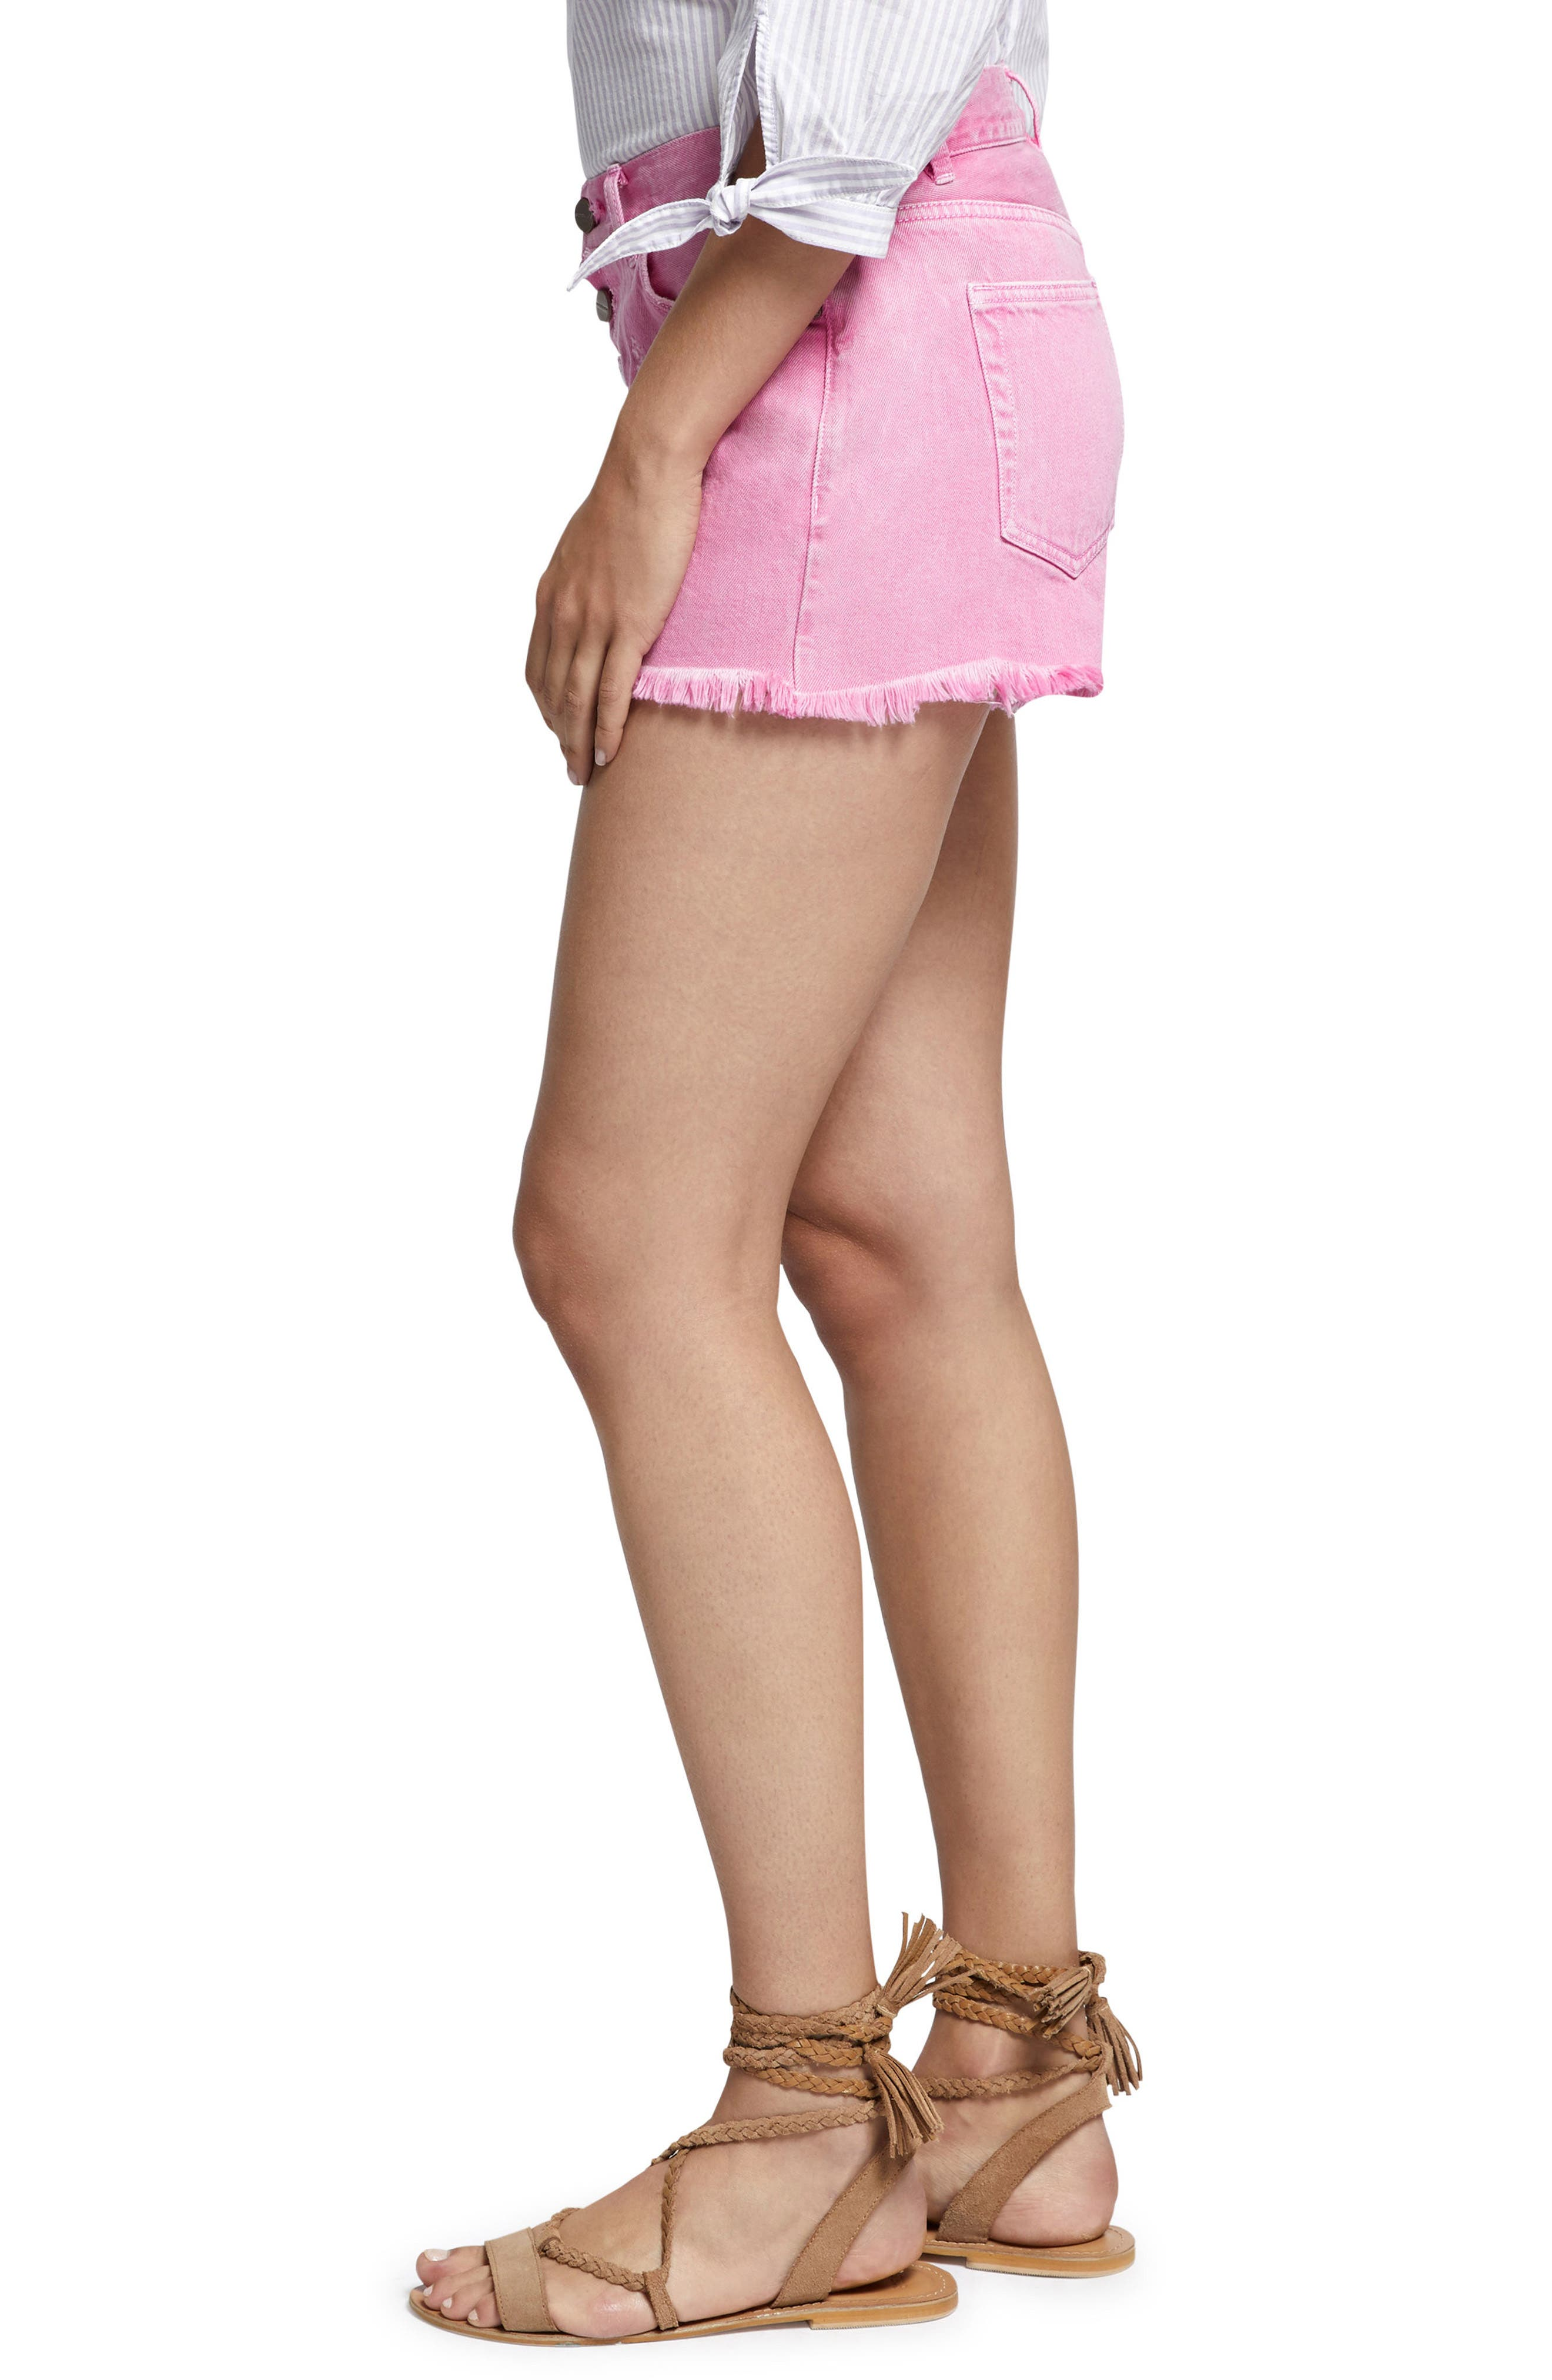 Wild Cherry Fringed Jean Shorts,                             Alternate thumbnail 3, color,                             Washed Wild Cherry